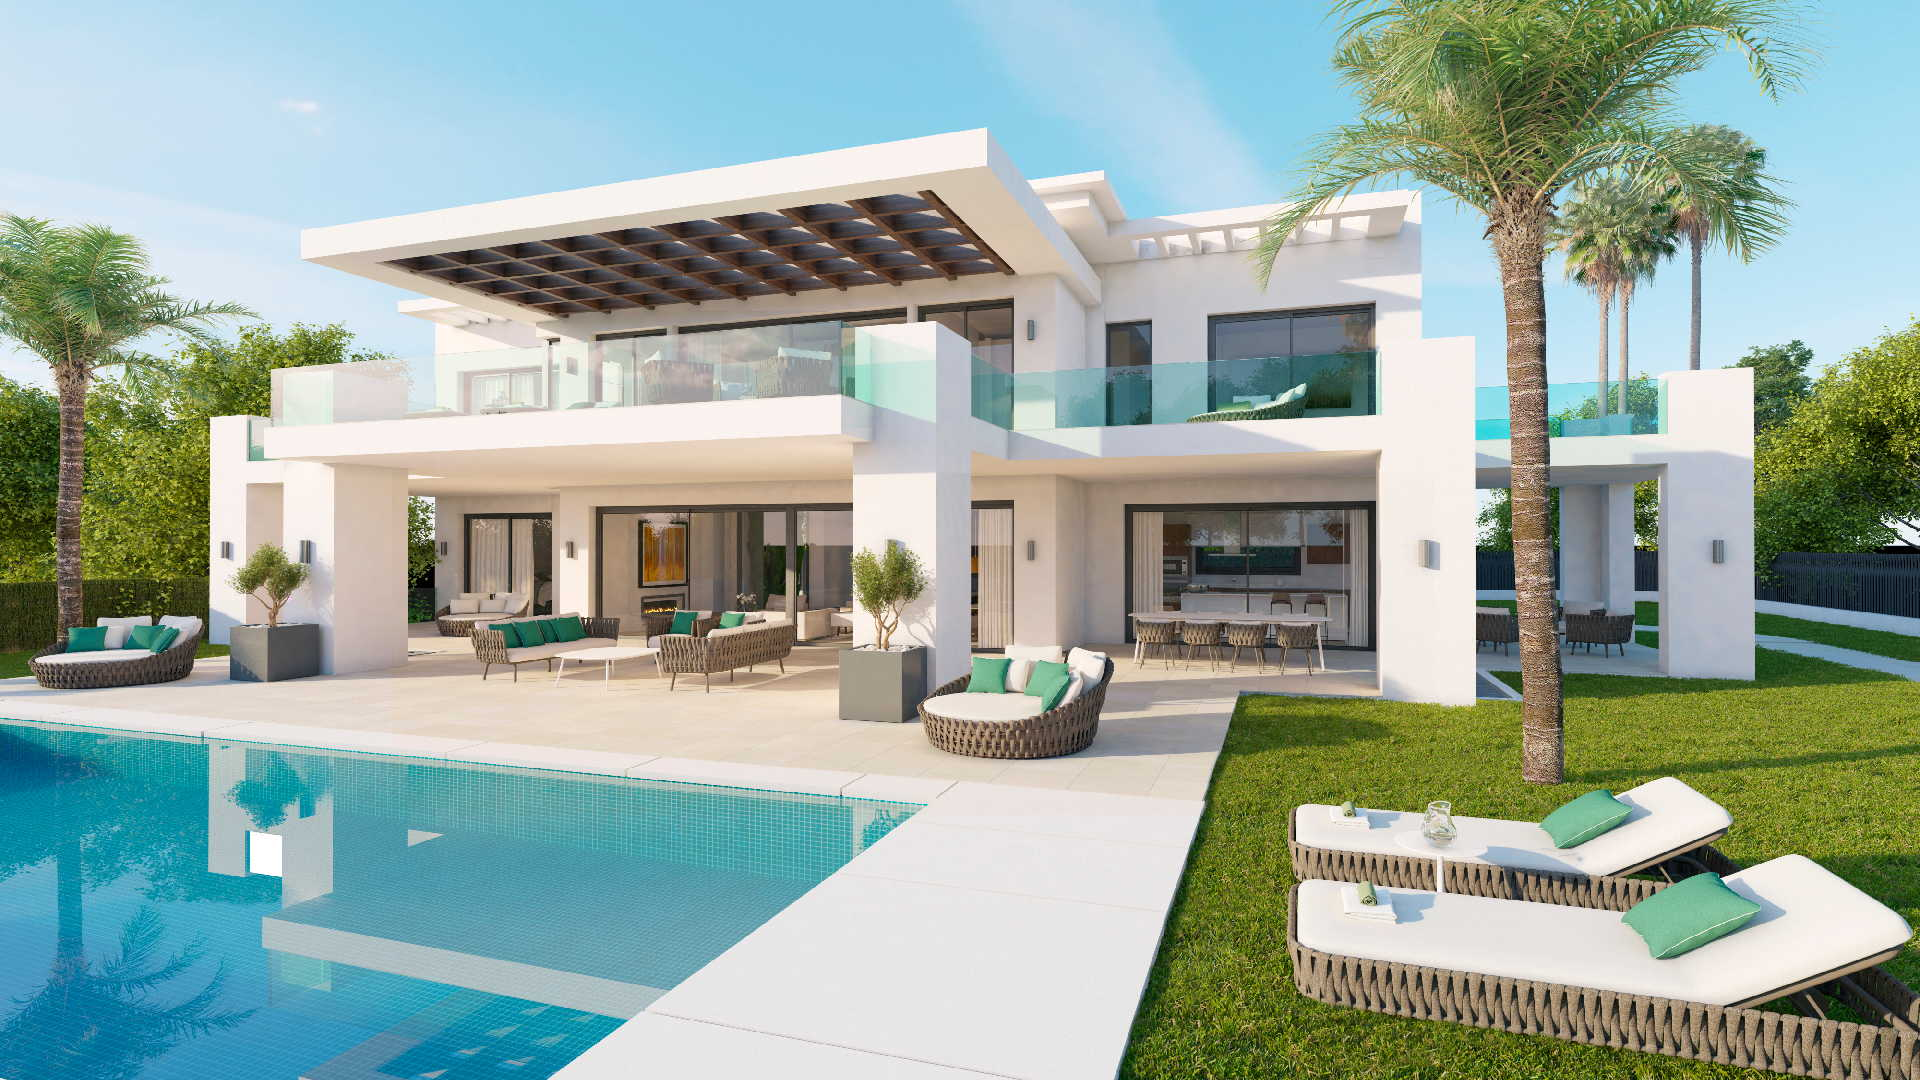 New villa in los olivos nueva andalucia marbella for sale for Plan moderne villa